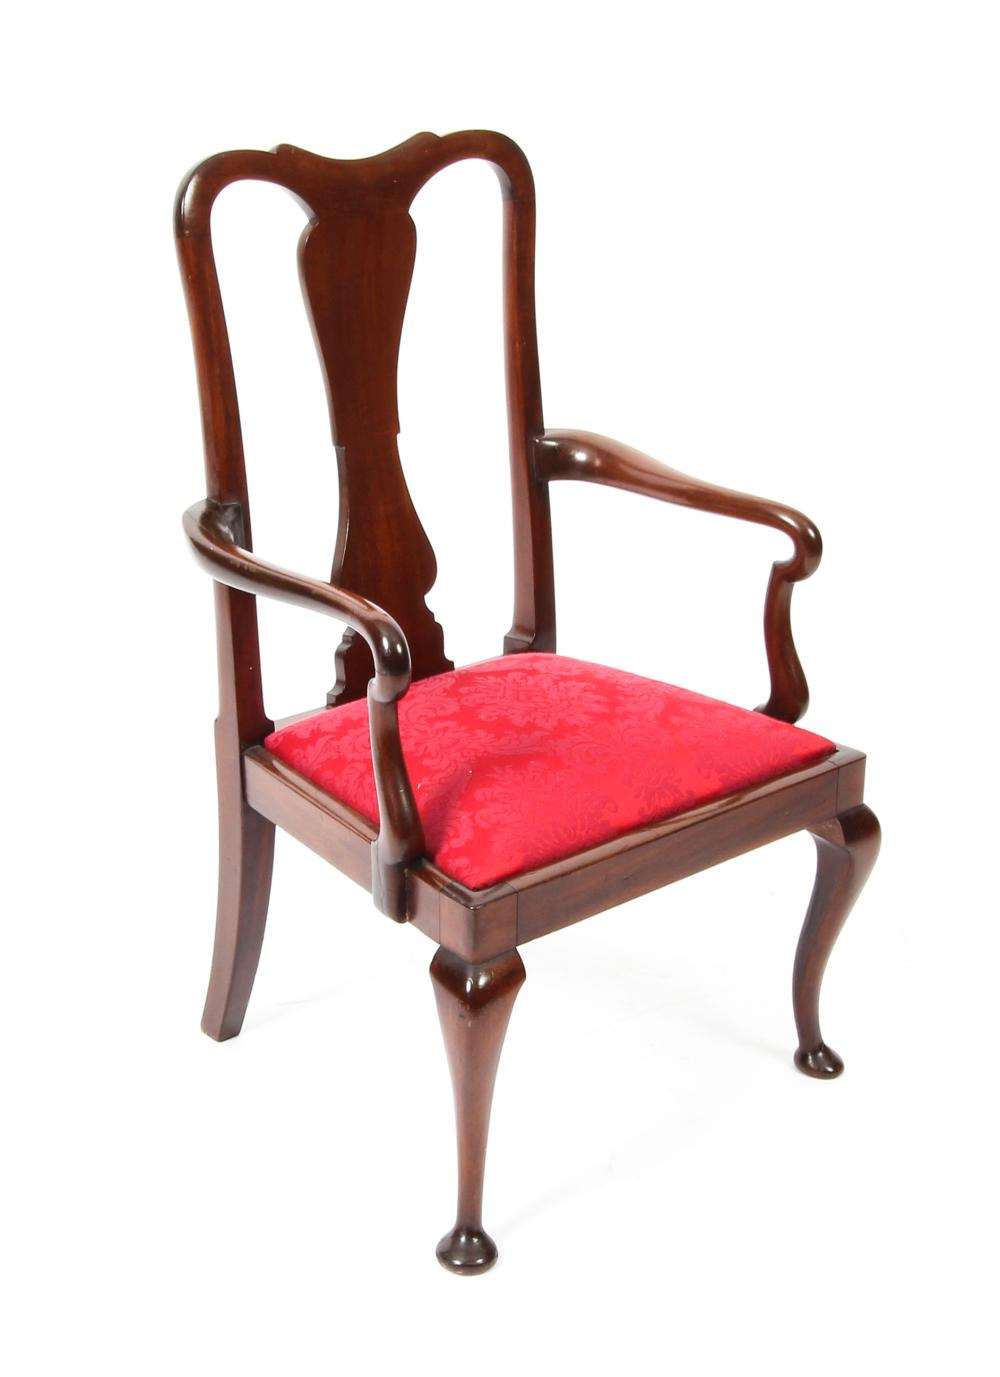 Antique Queen Anne Furniture Awesome Antique Queen Anne Revival Mahogany Child S Chair C1920